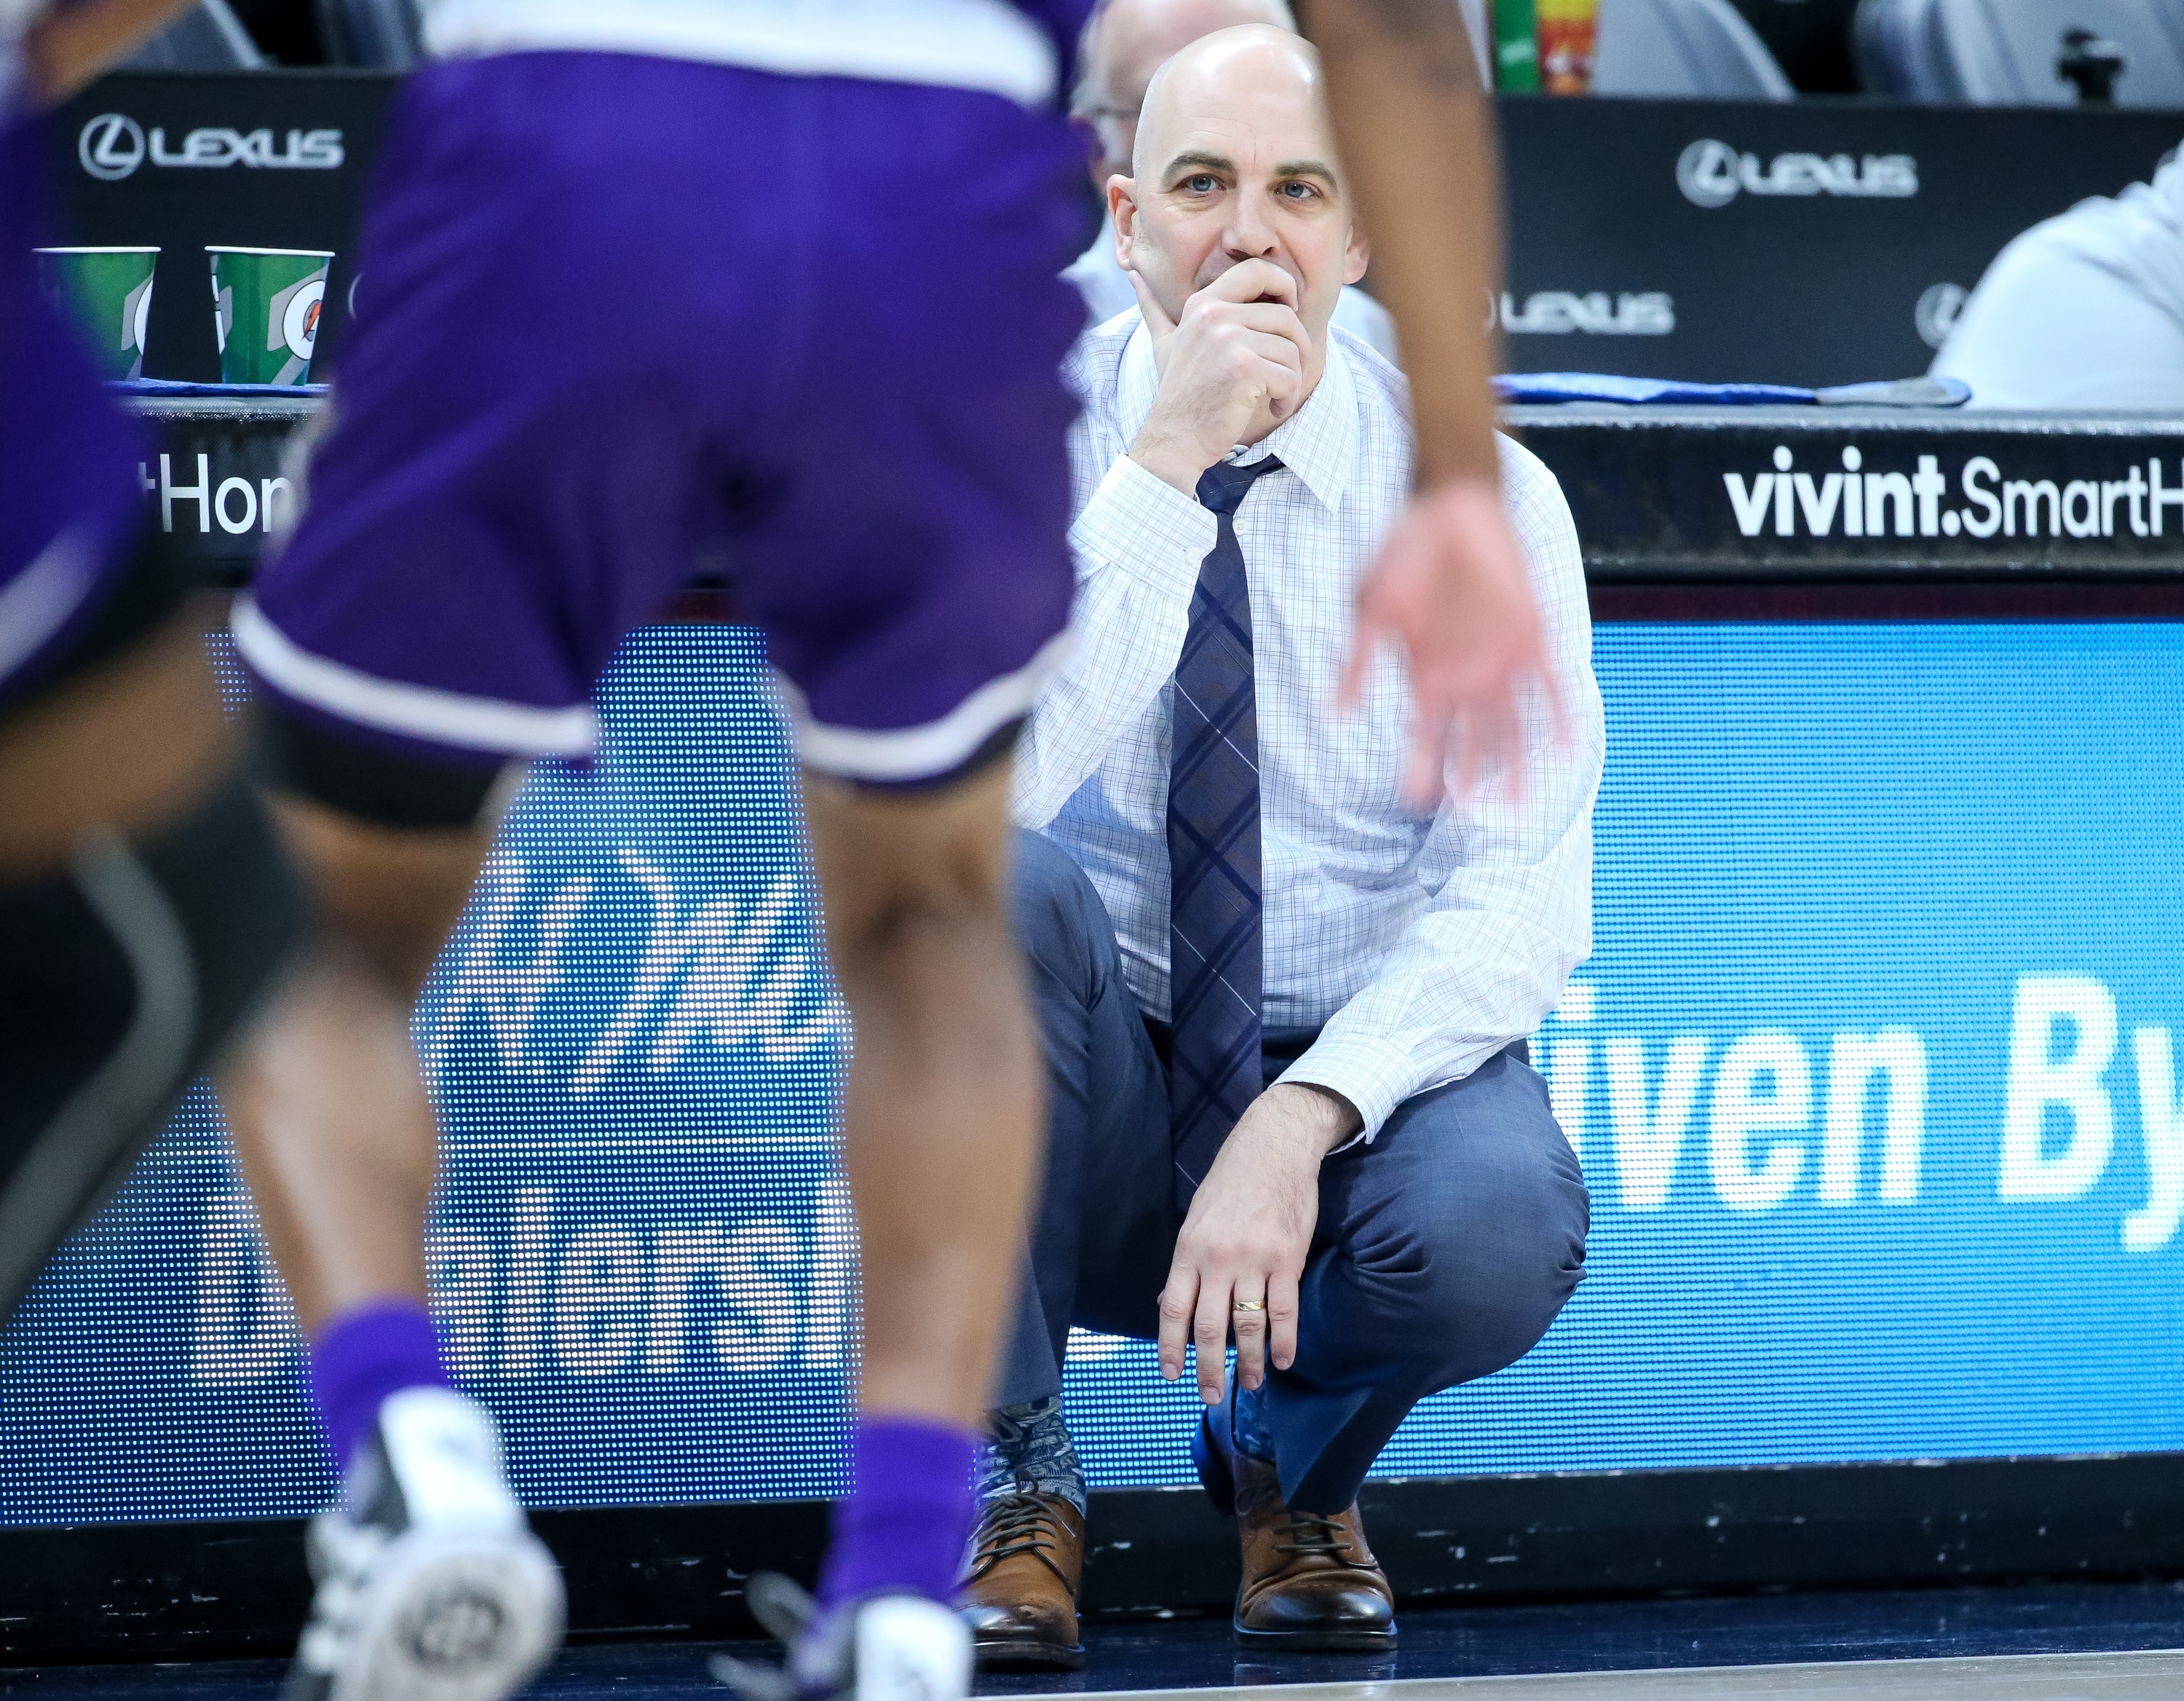 Utah State Aggies head coach Craig Smith watches action from the floor during the game against the Weber State Wildcats at Vivint Arena in Salt Lake City on Saturday, Dec. 8, 2018.